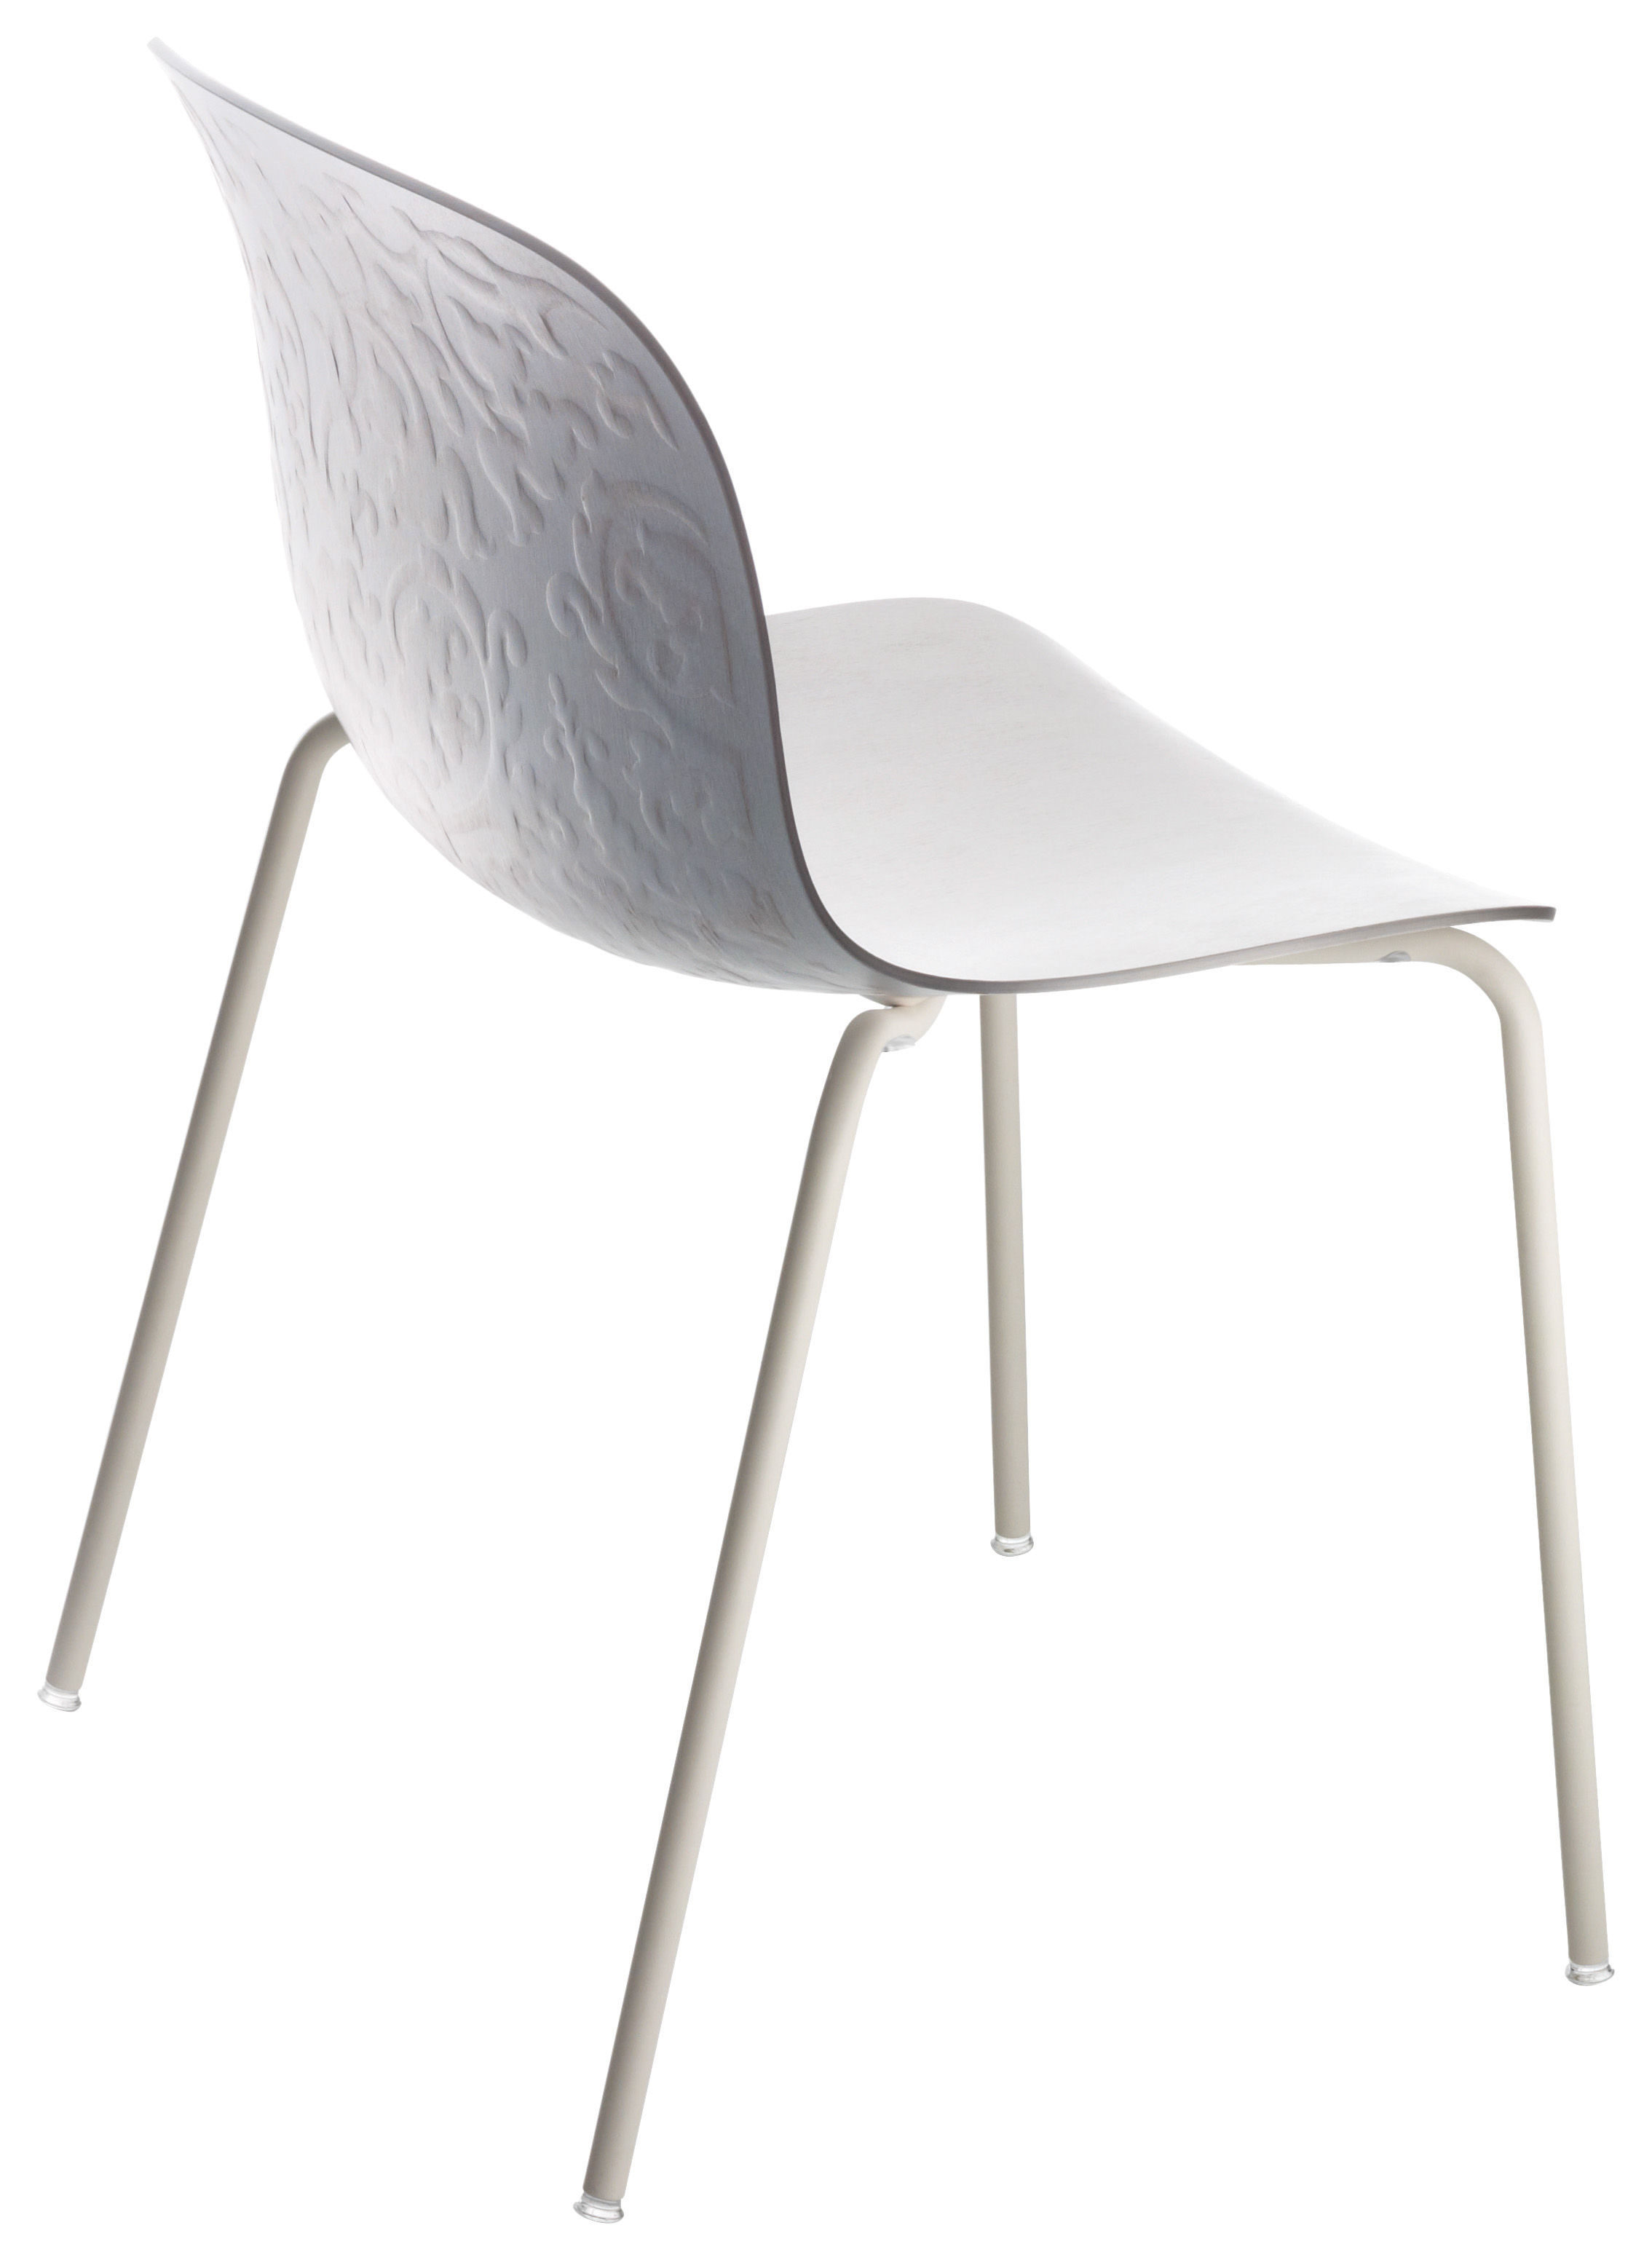 Furniture - Chairs - Troy Stacking chair - Wood seat - Varnished legs by Magis - Bleached beech shell / White frame - Plywood - beechwood tinted, Varnished steel